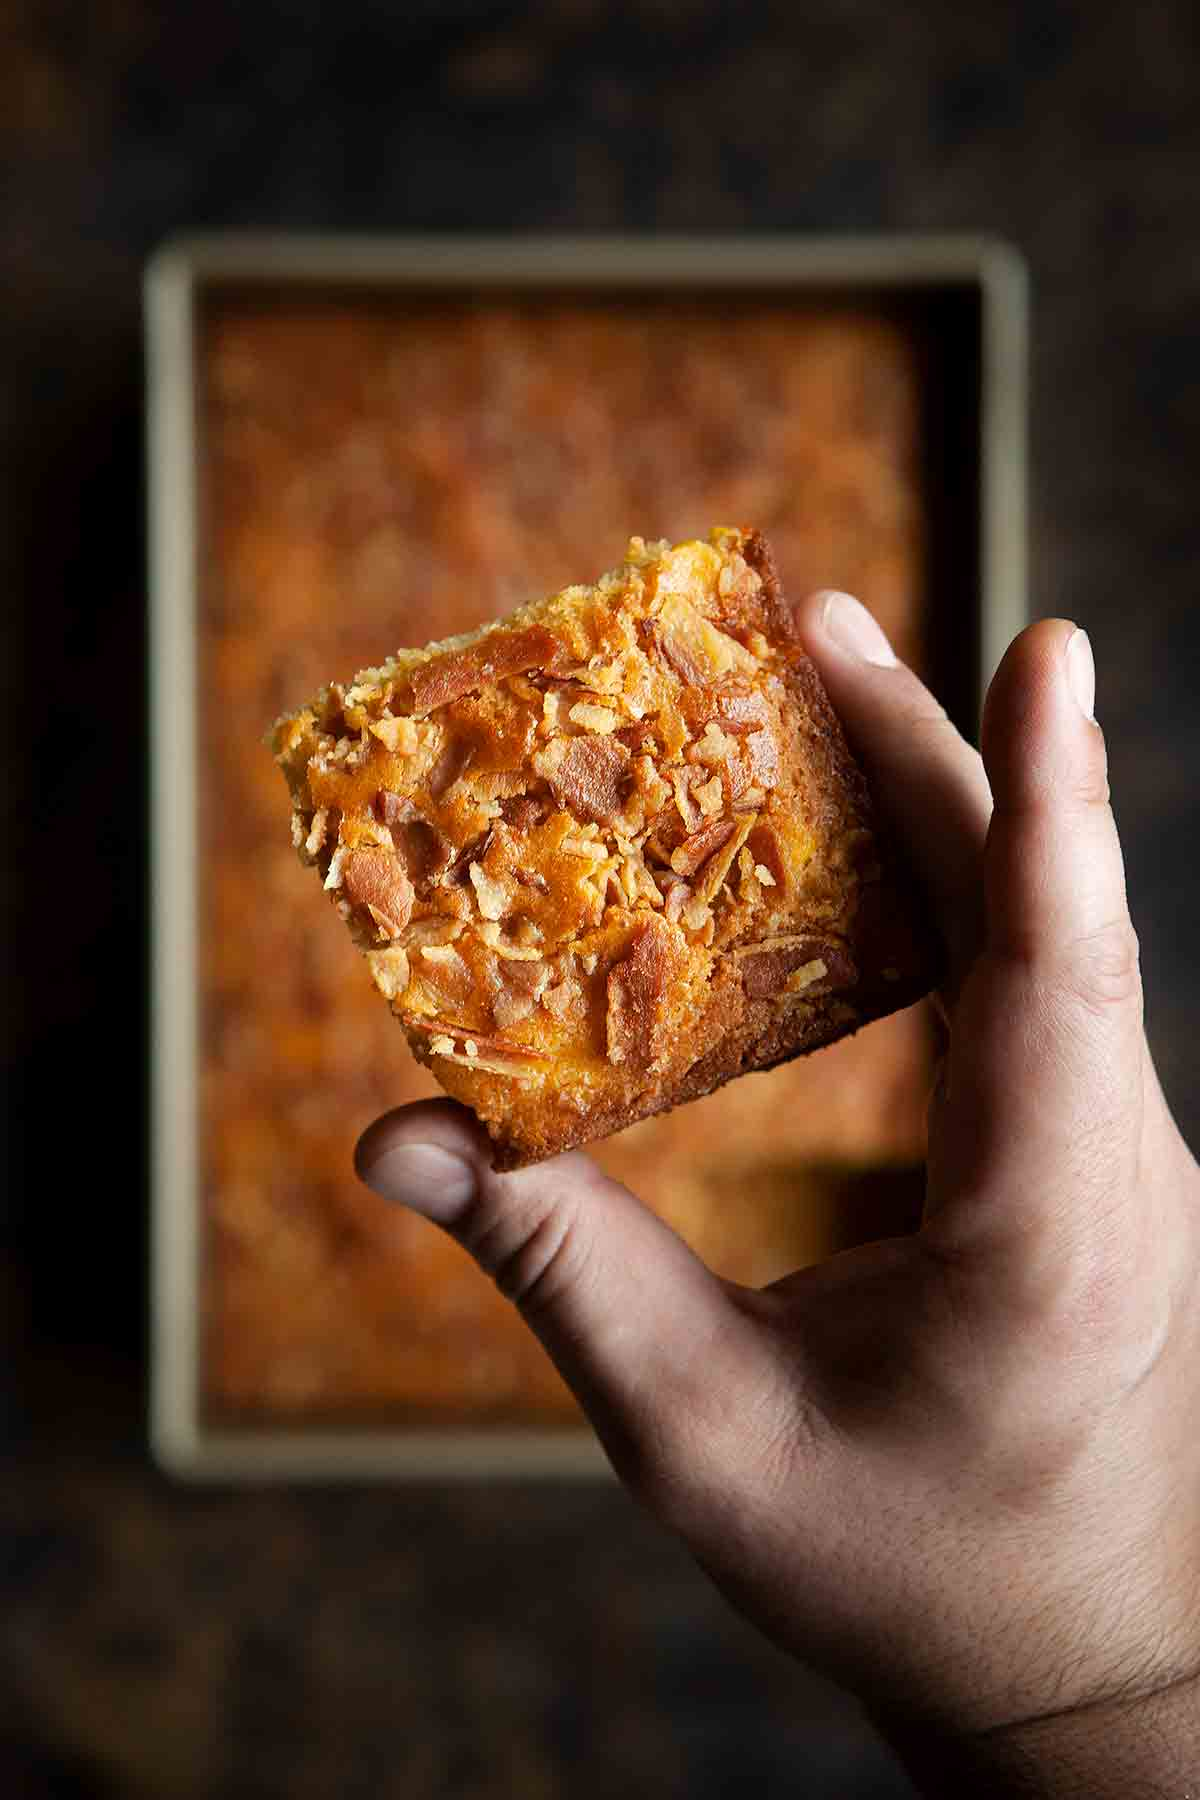 A man's hand holding a square of bacon cornbread